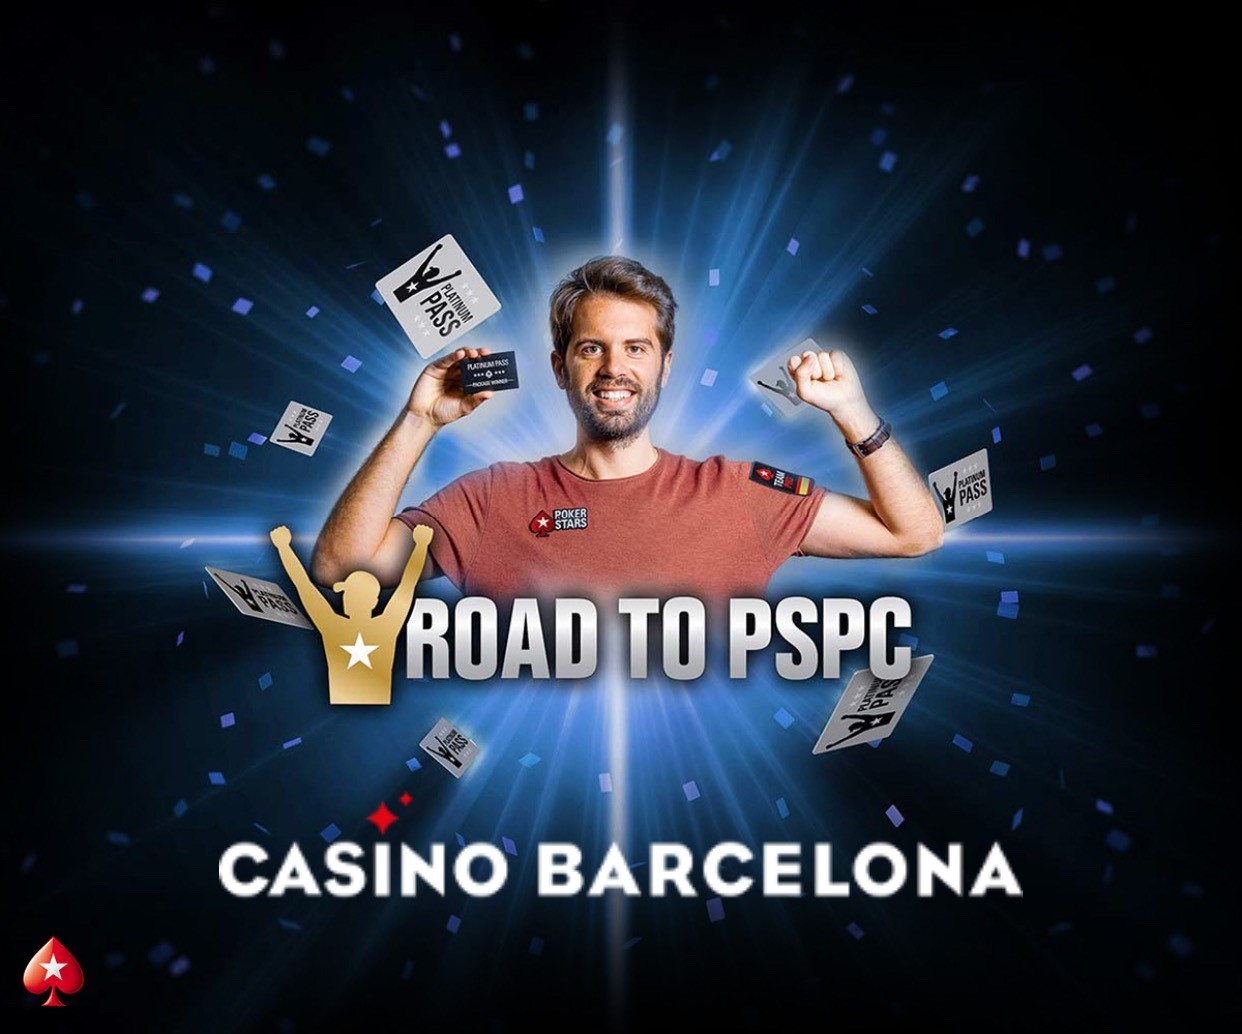 Road to PSPC Barcelona